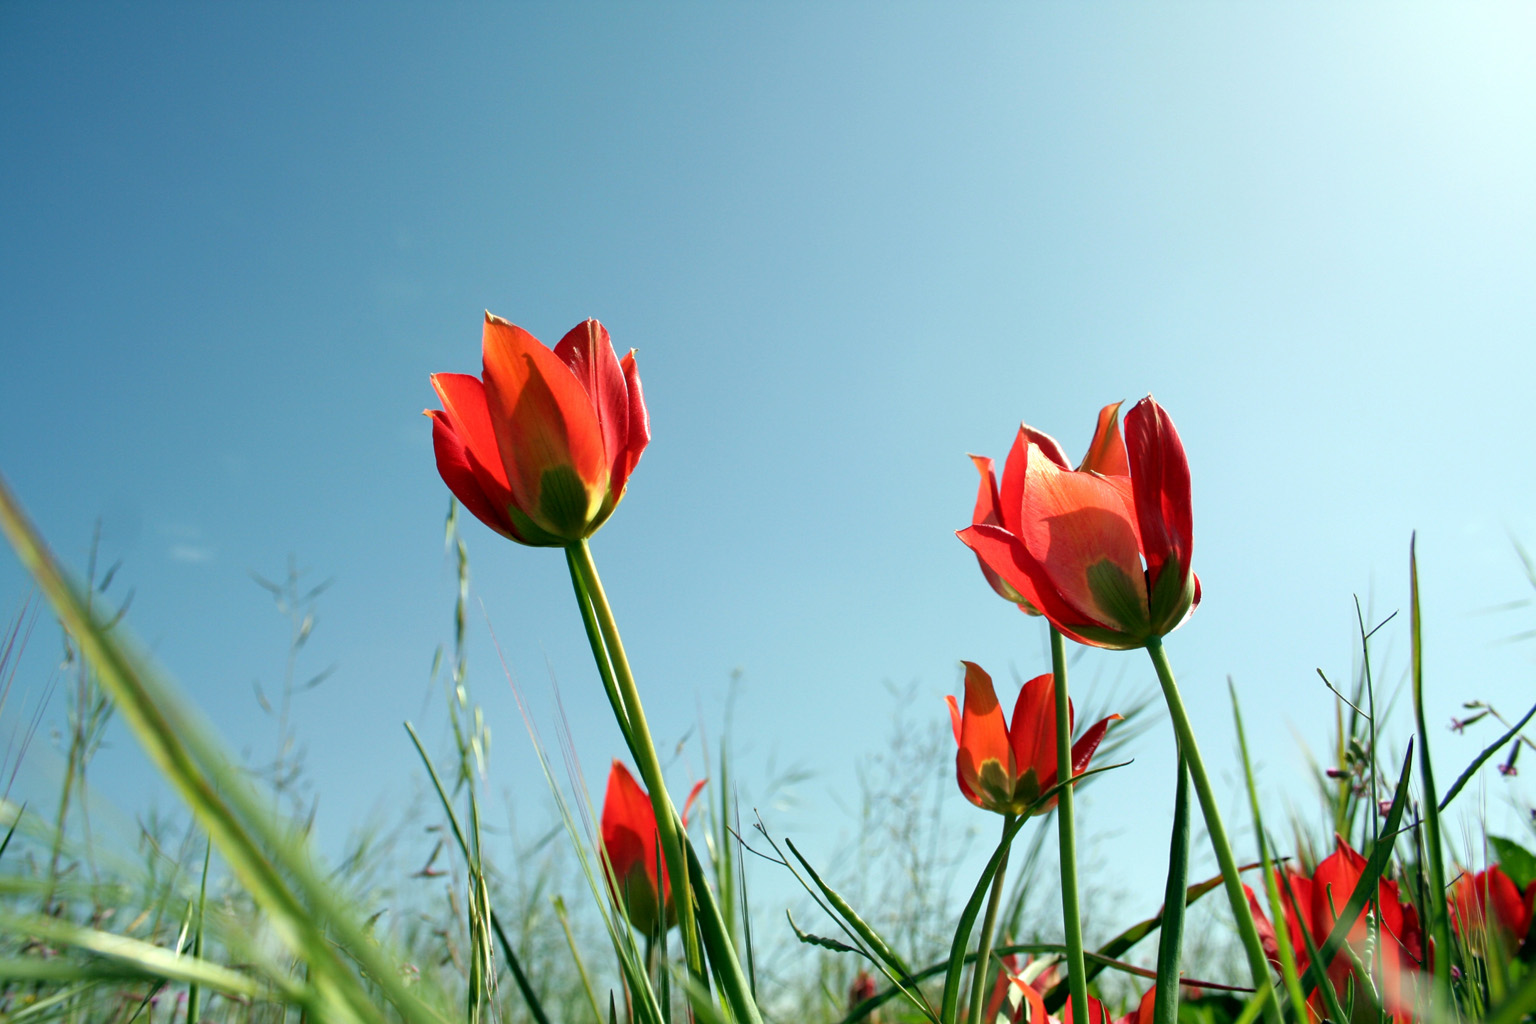 Title: Red Tulips; Description: Red Tulips